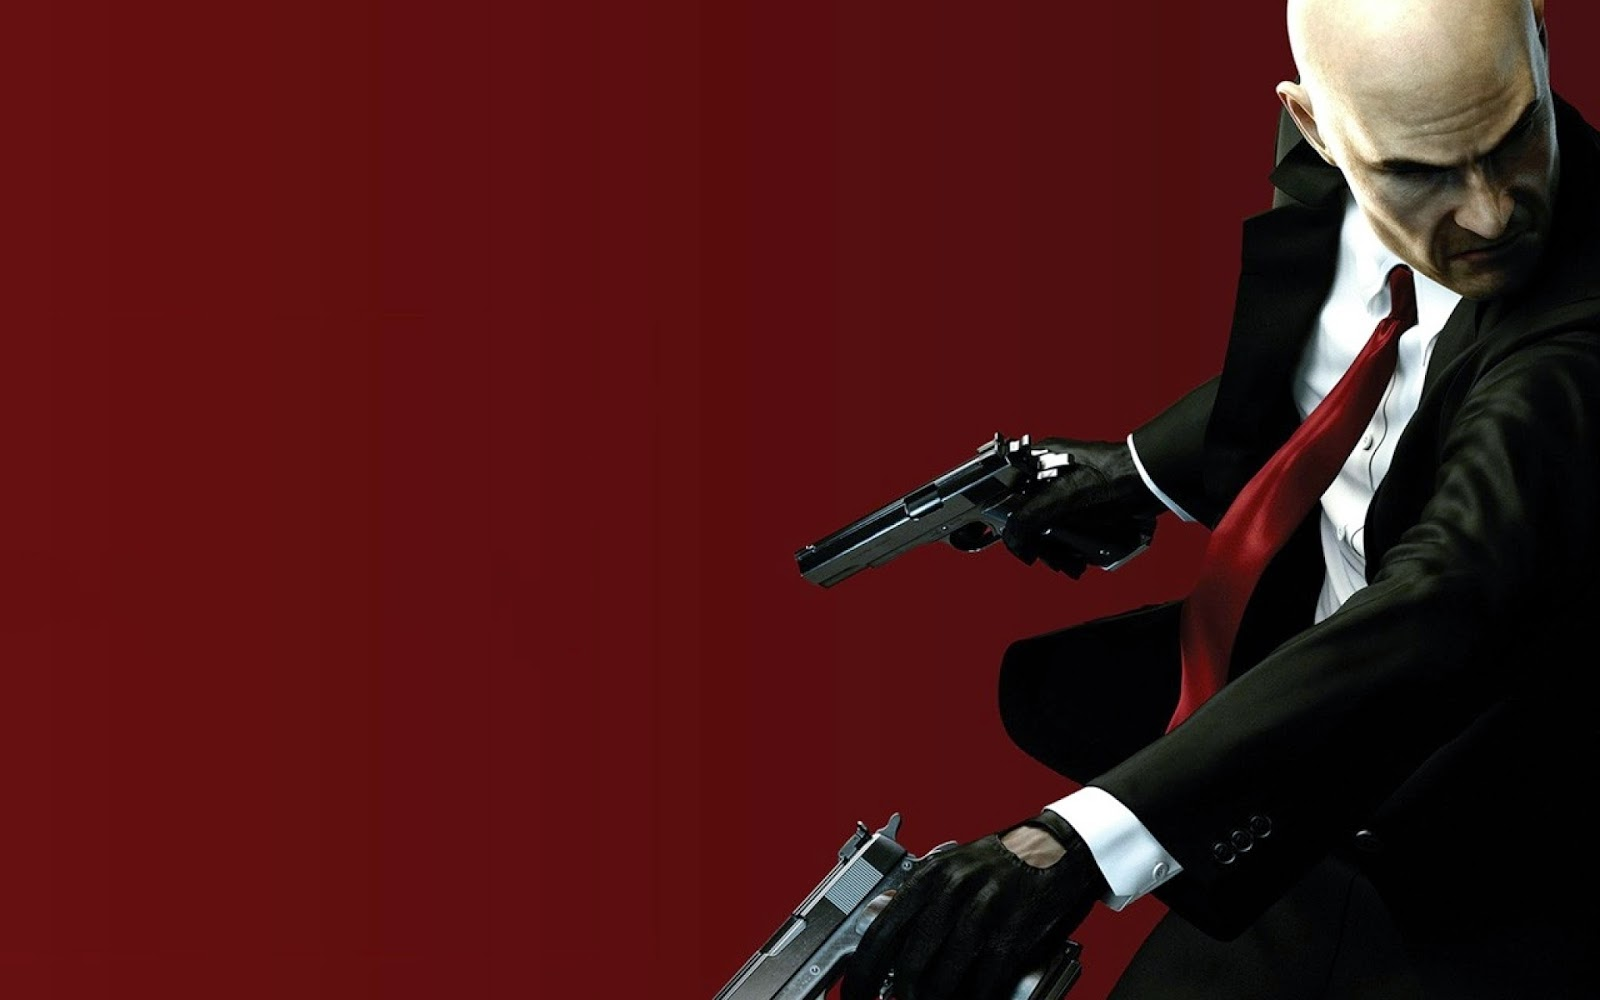 Hitman agent 47 hd high definition wallpapers 1 amazing world gallery - Agent 47 wallpaper ...